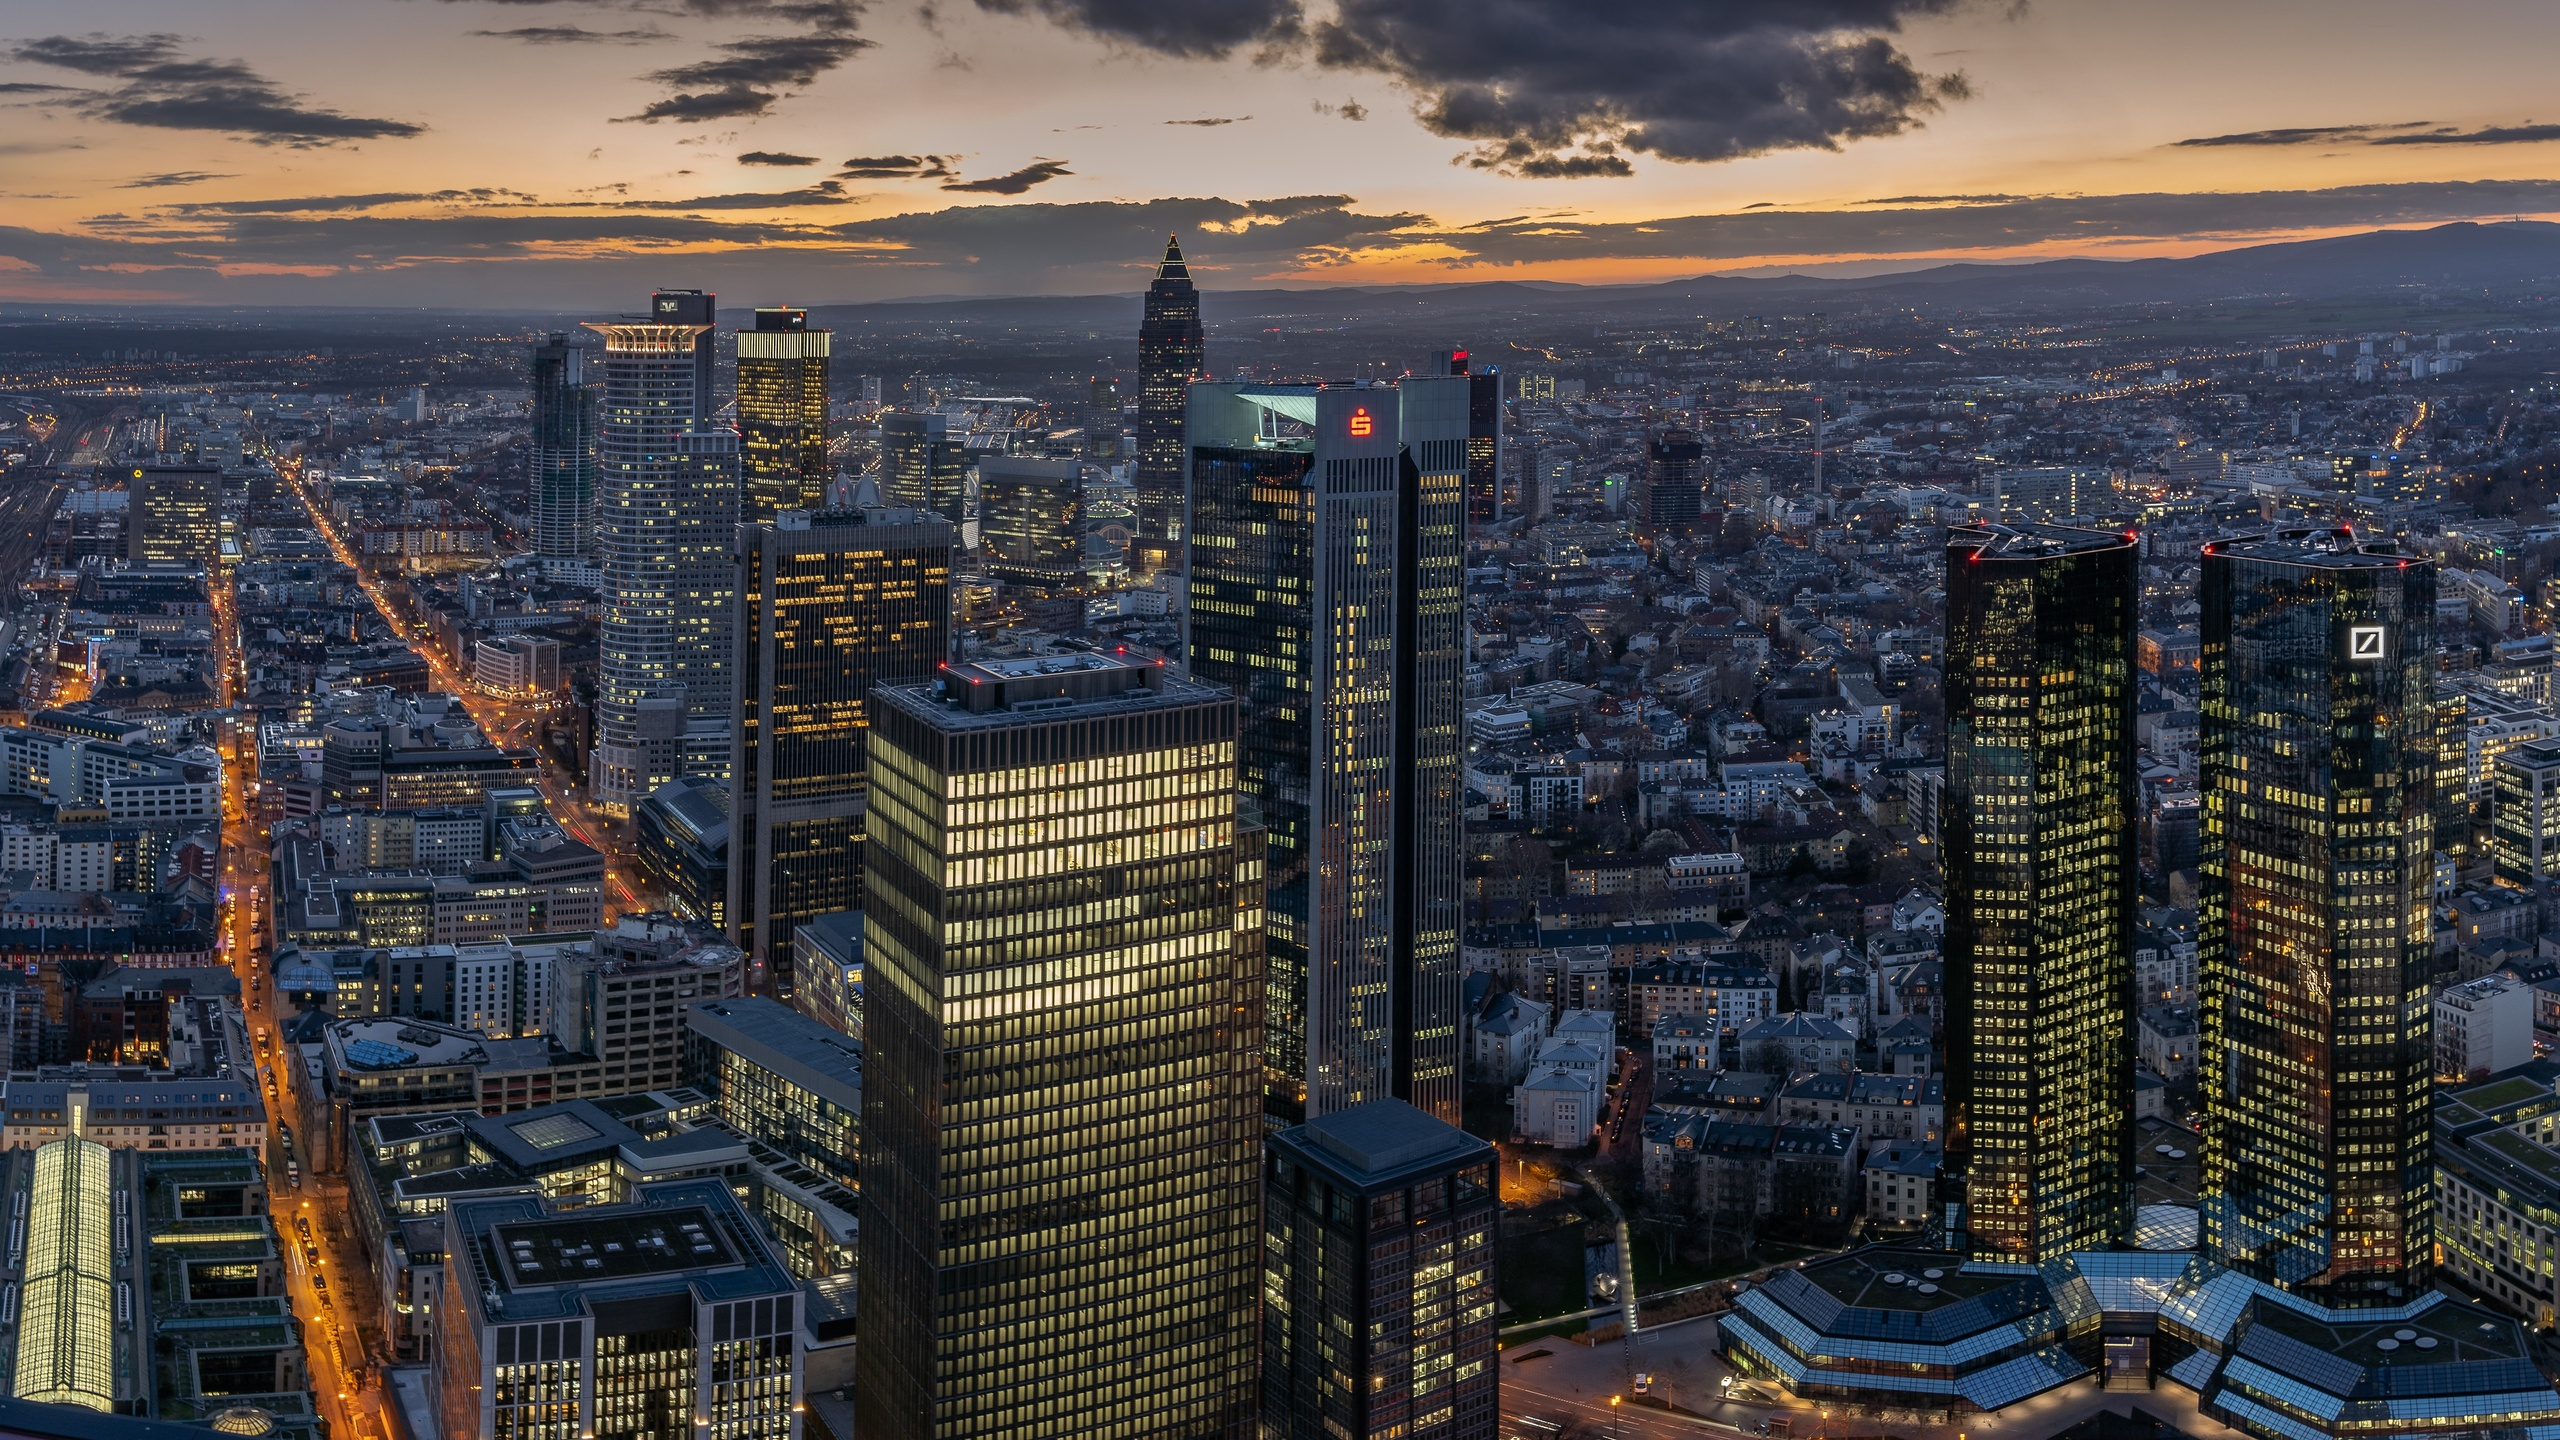 germany-frankfurt-skyscrapers-5k-jb.jpg